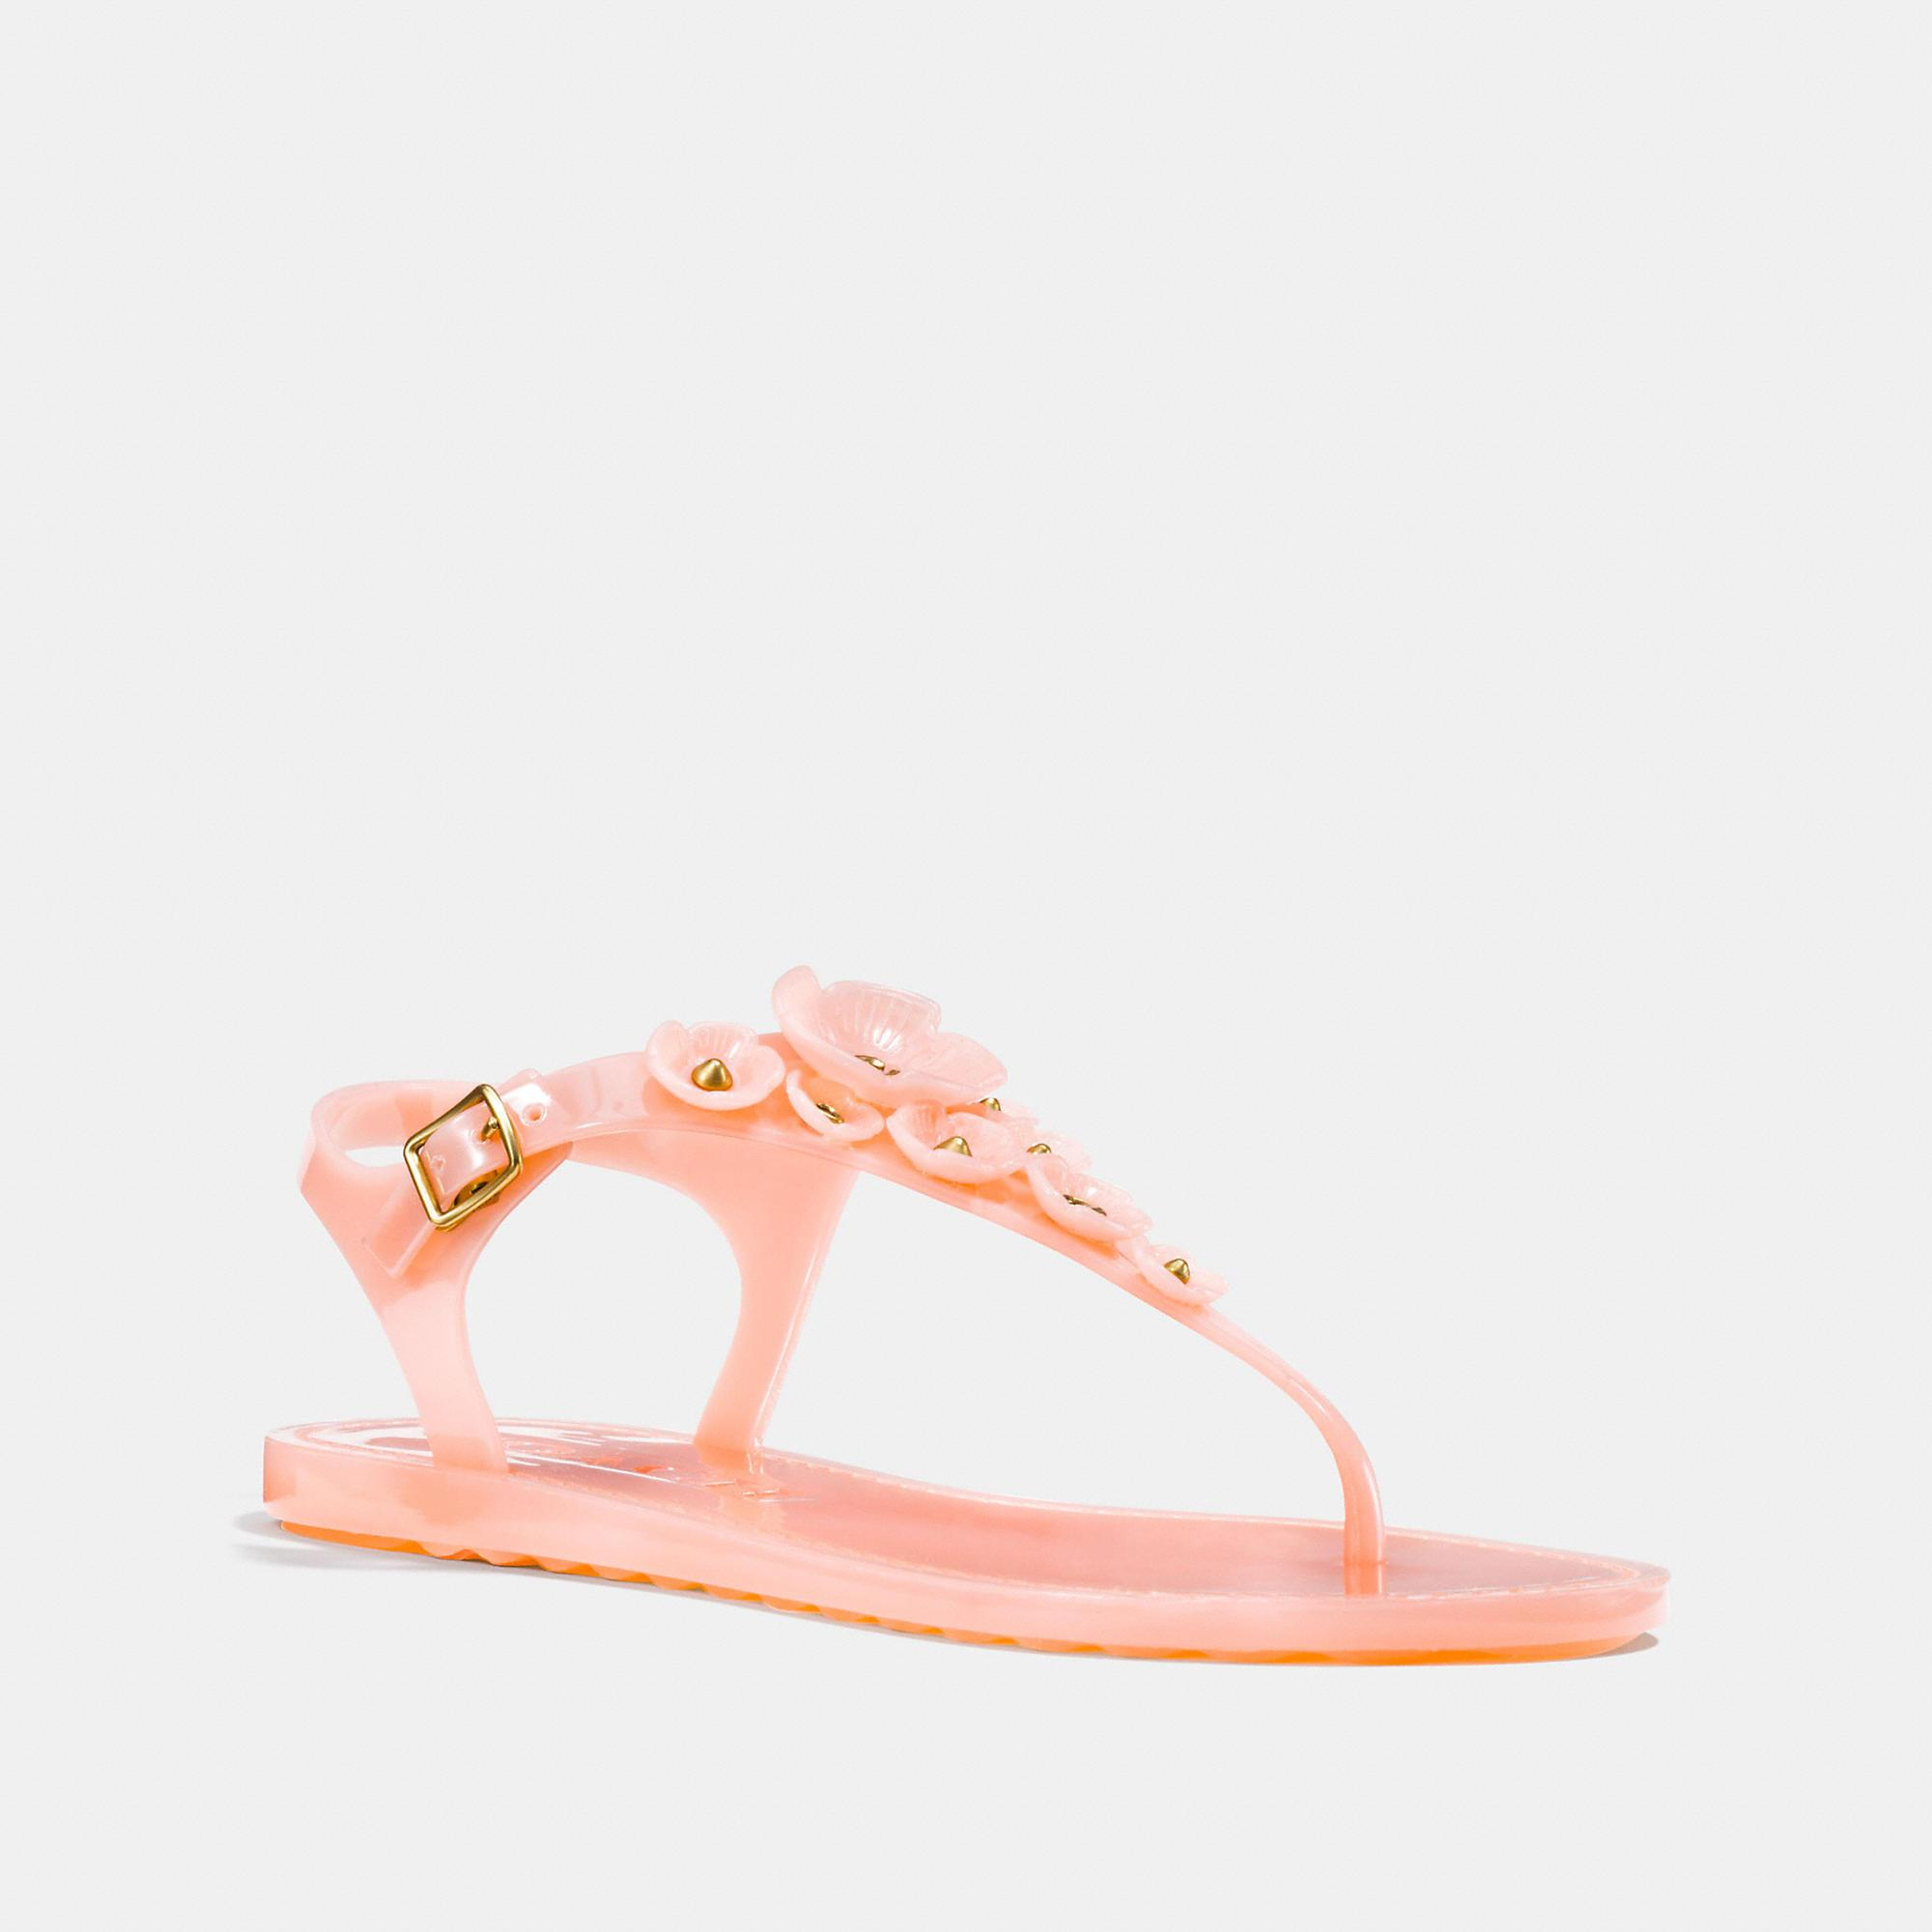 366c08fd7 Coach Tea Rose Jelly Flat Sandals